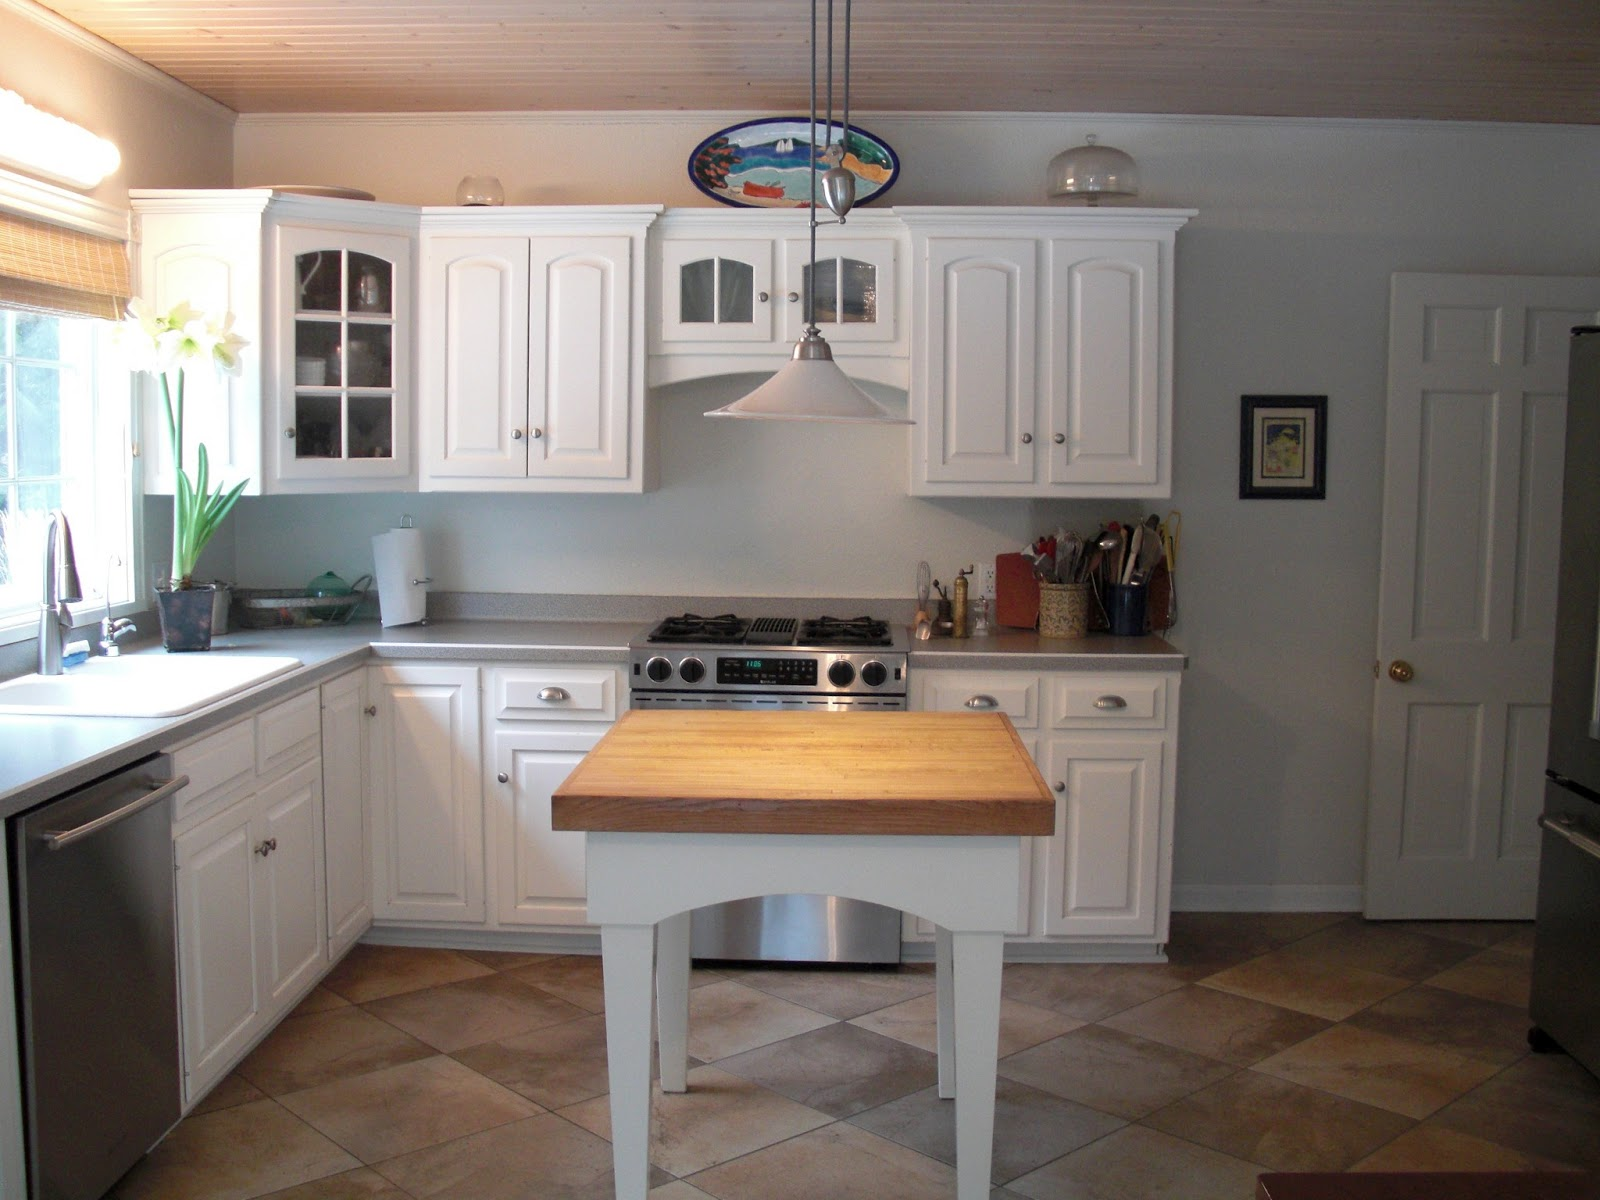 This Was After We Put In The Tile Floor And Replaced The Appliances But  Before I Painted The Ceiling.